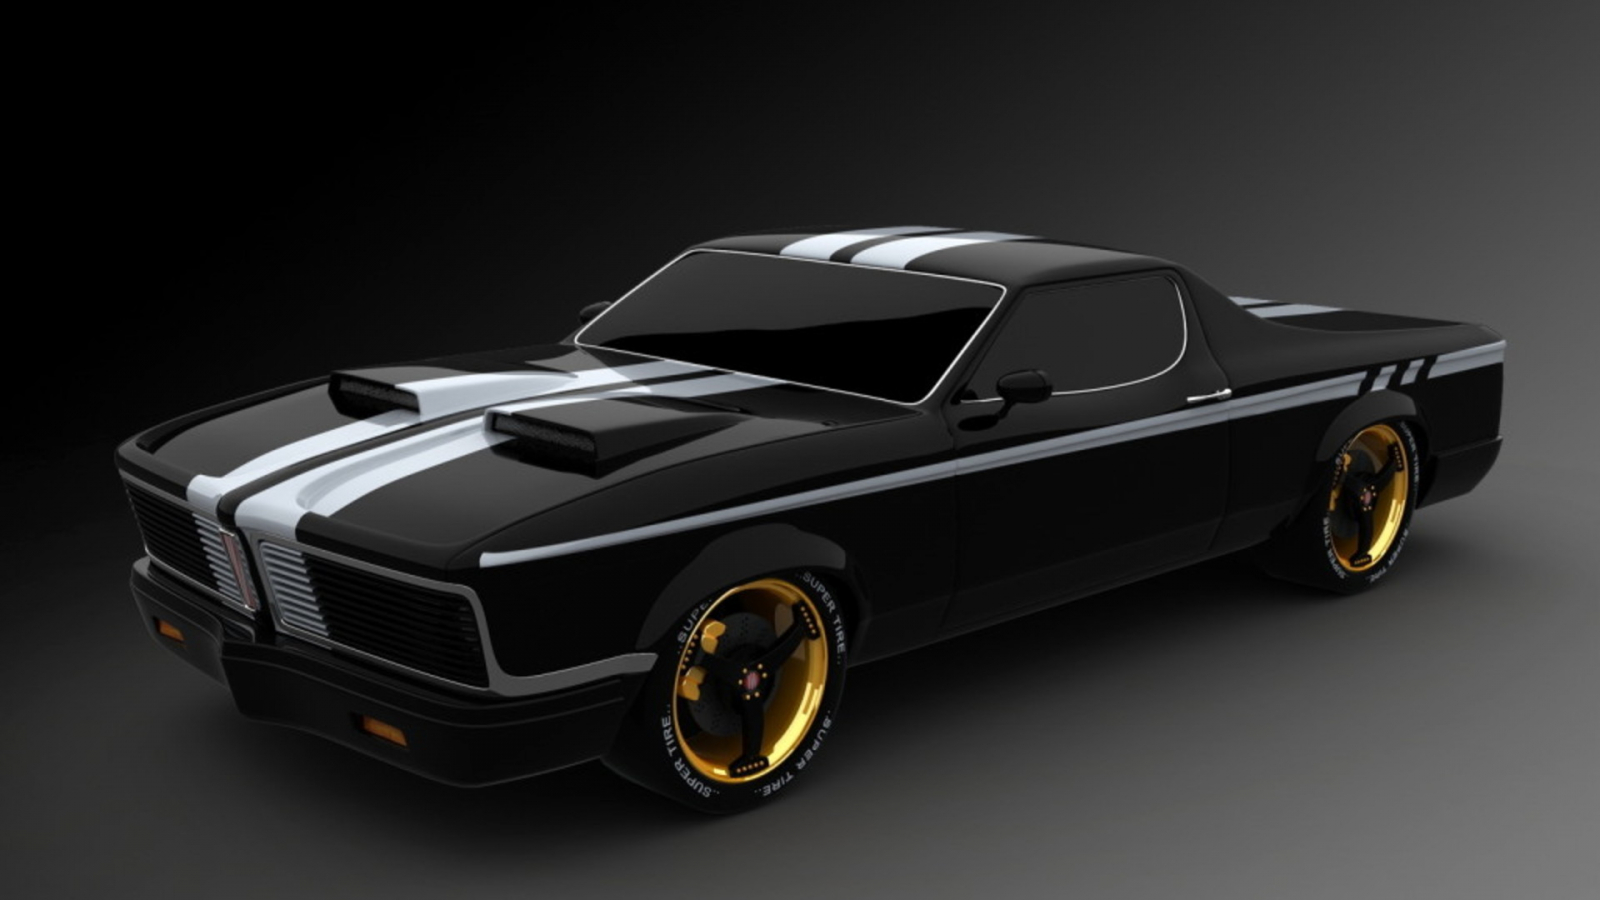 Free download Cool muscle cars wallpaper 1920x1200 for ...